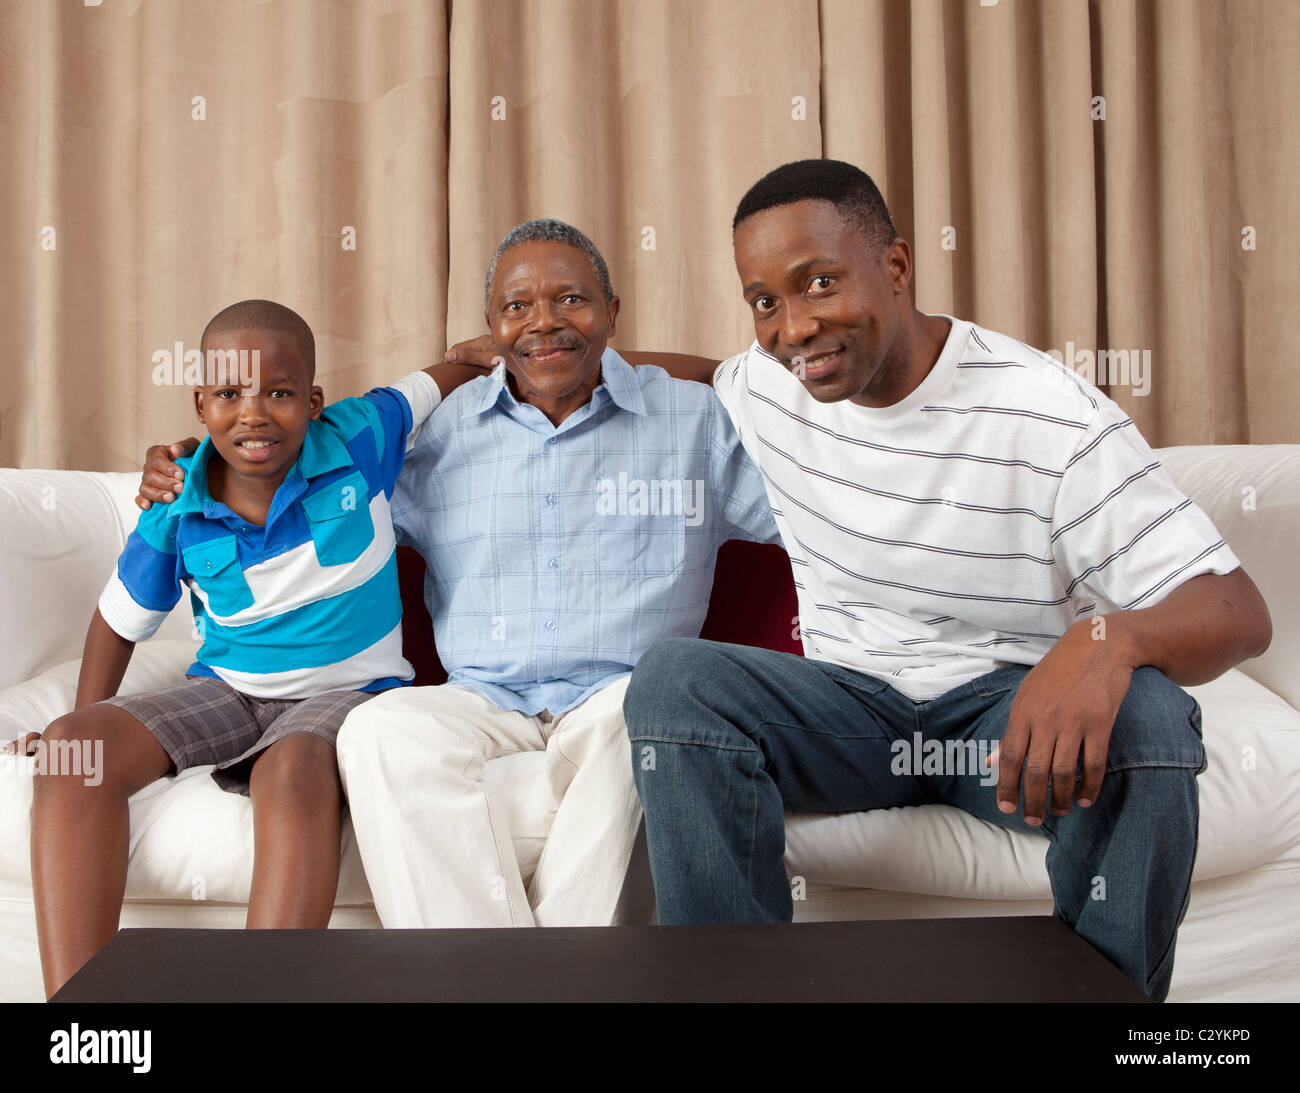 Three generations of men on the couch, Johannesburg, South Africa - Stock Image